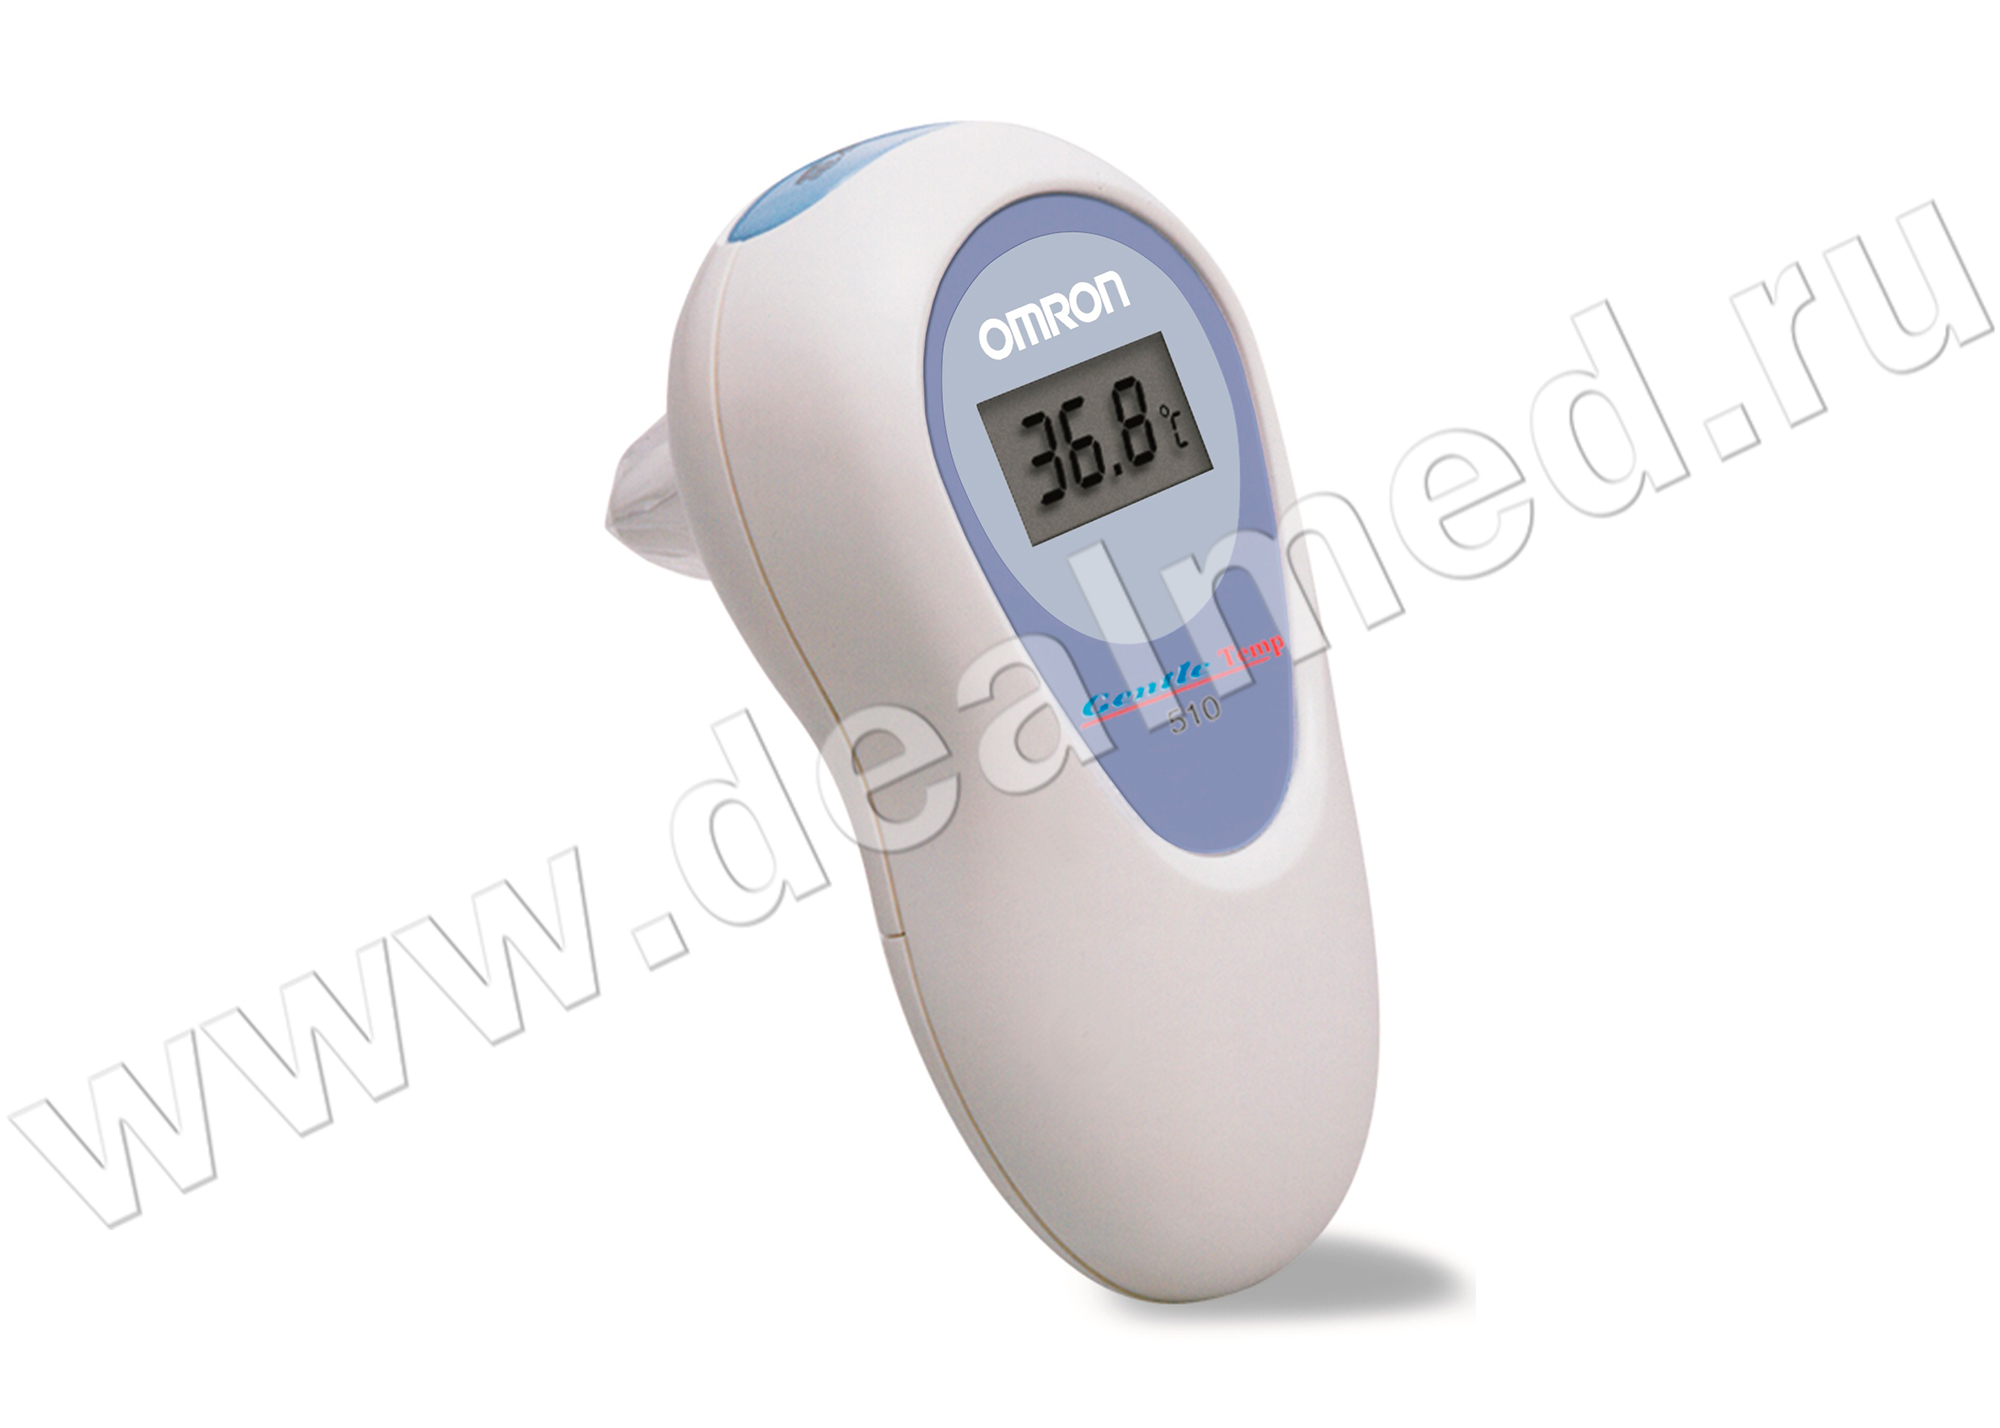 Термометр инфракрасный Gentle Temp 510 (MC-510-E2) Omron, Япония